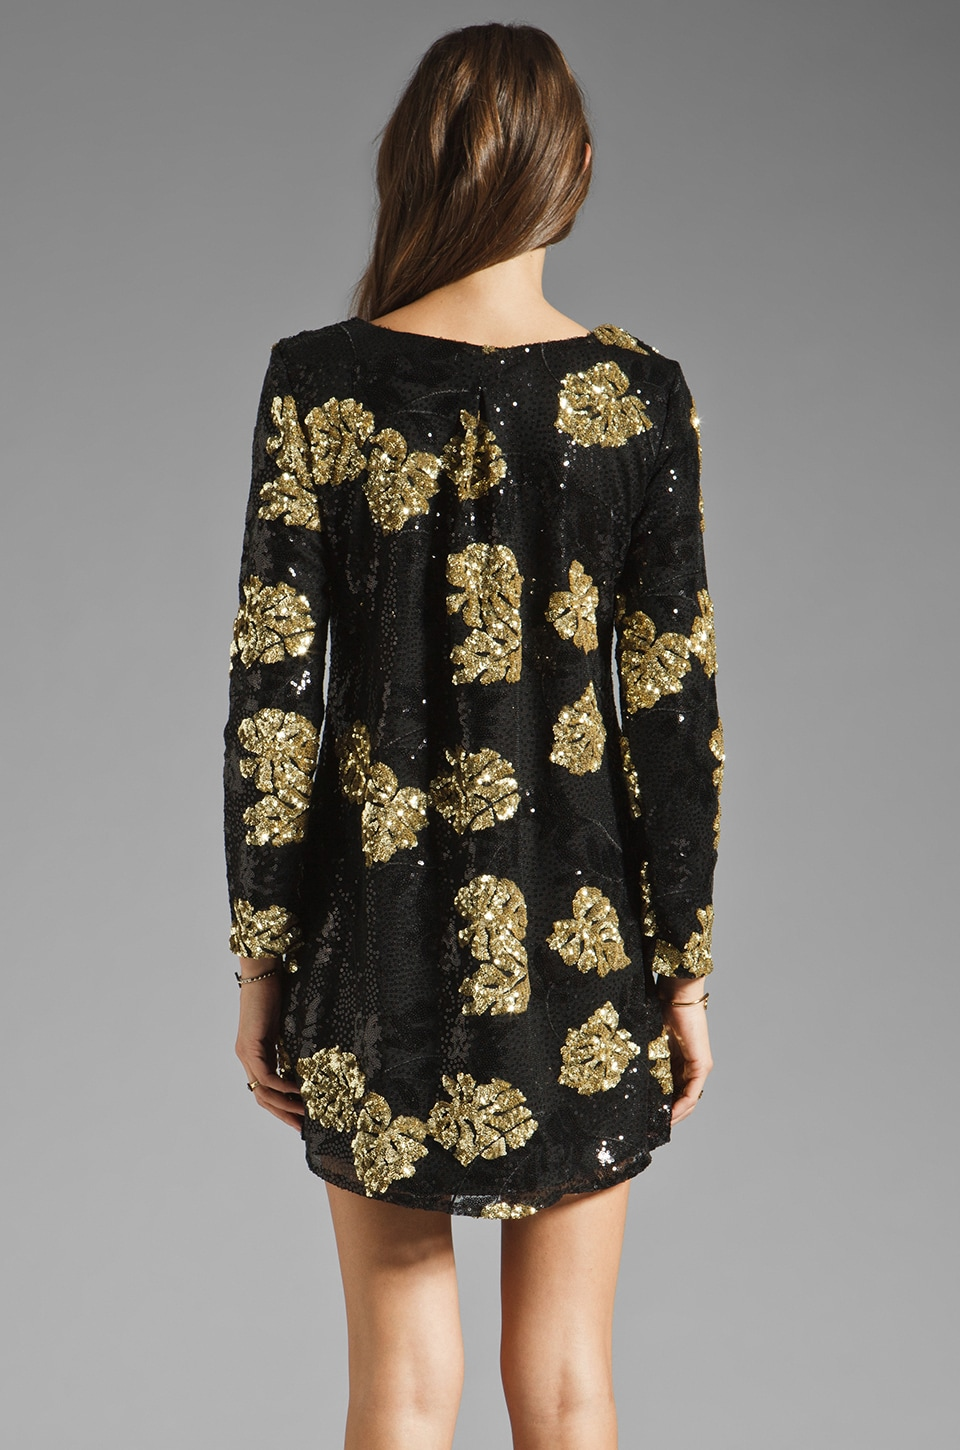 DRESS THE POPULATION Ellen Long Sleeve Chiffon Dress in Gold/Black